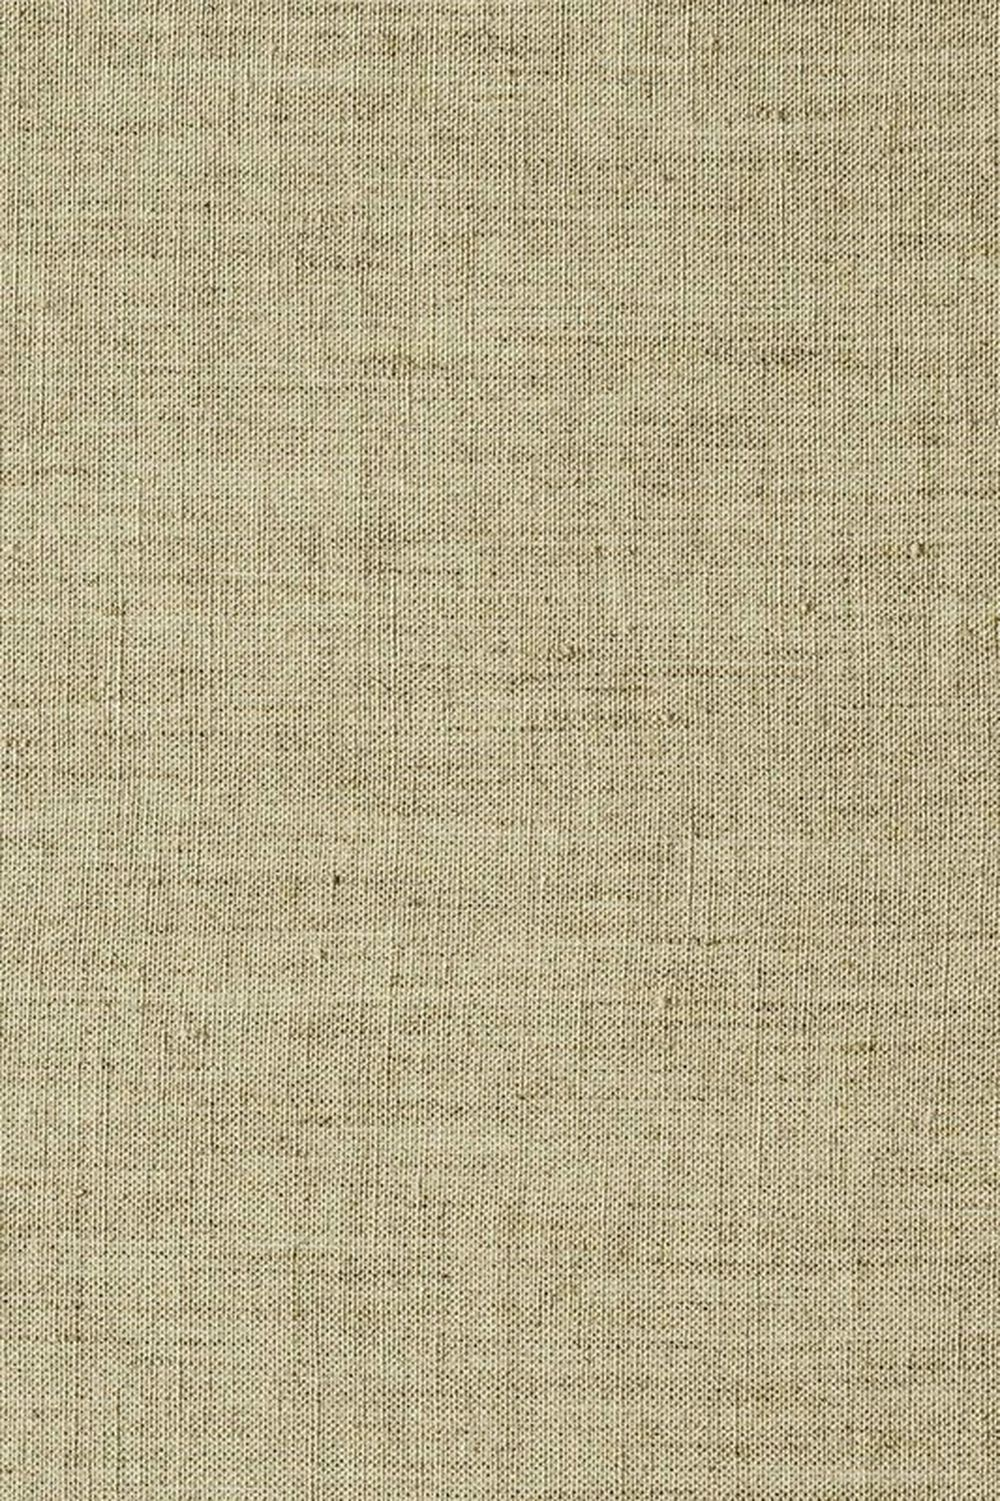 Photo of the fabric Kyoto Hemp swatch by James Dunlop. Use for Curtains. Style of Plain